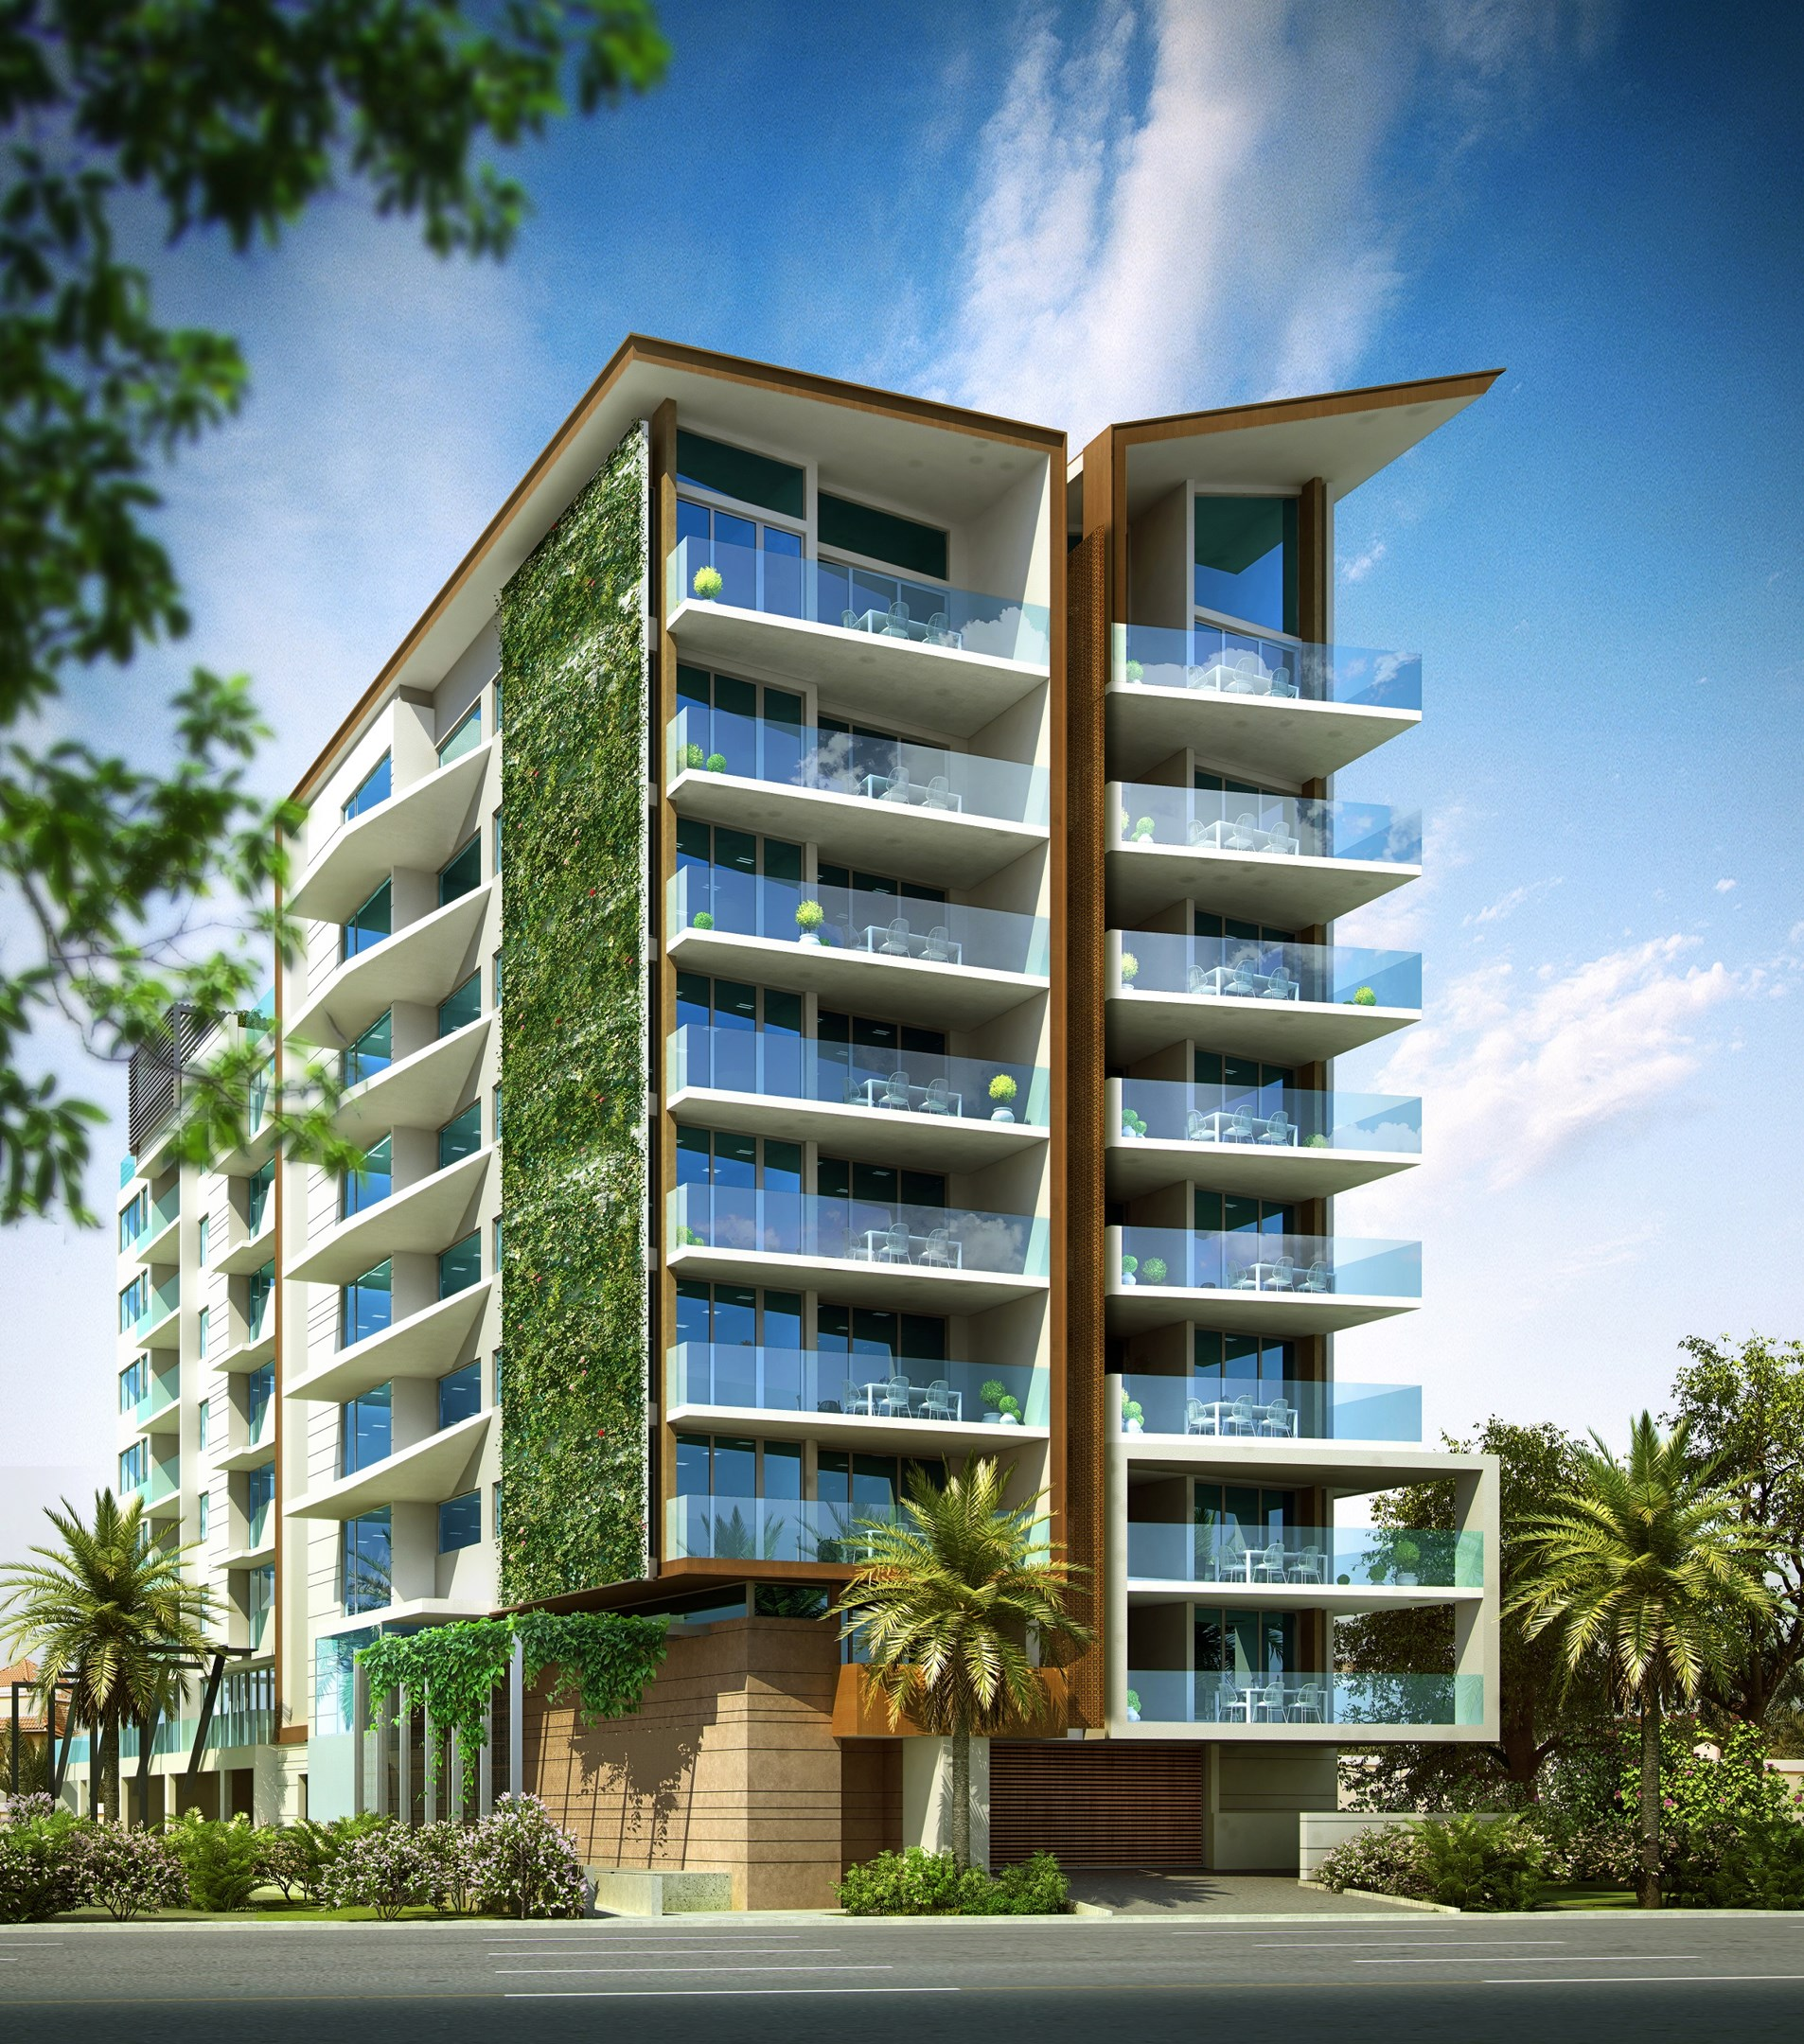 Southport Apartments: 'Lanikai' Brighton Street, Southport QLD 4215